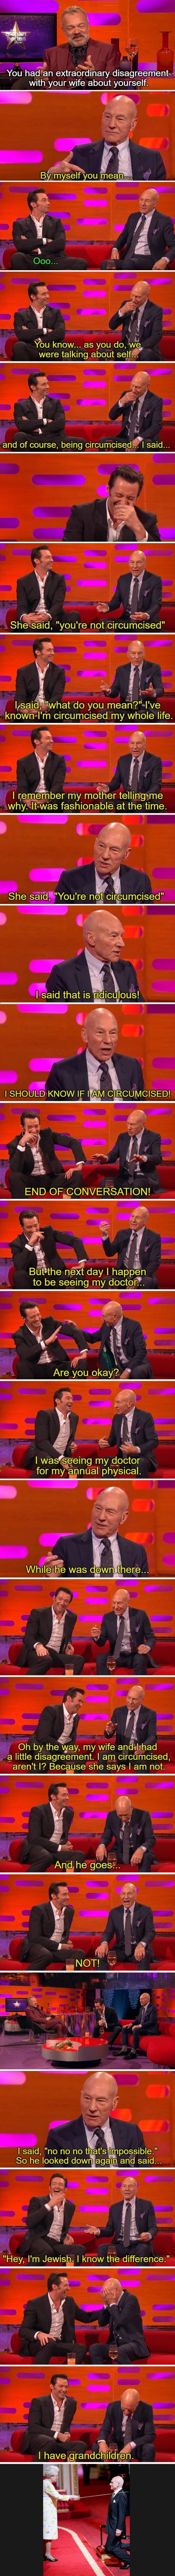 Patrick Stewart talks about his PP